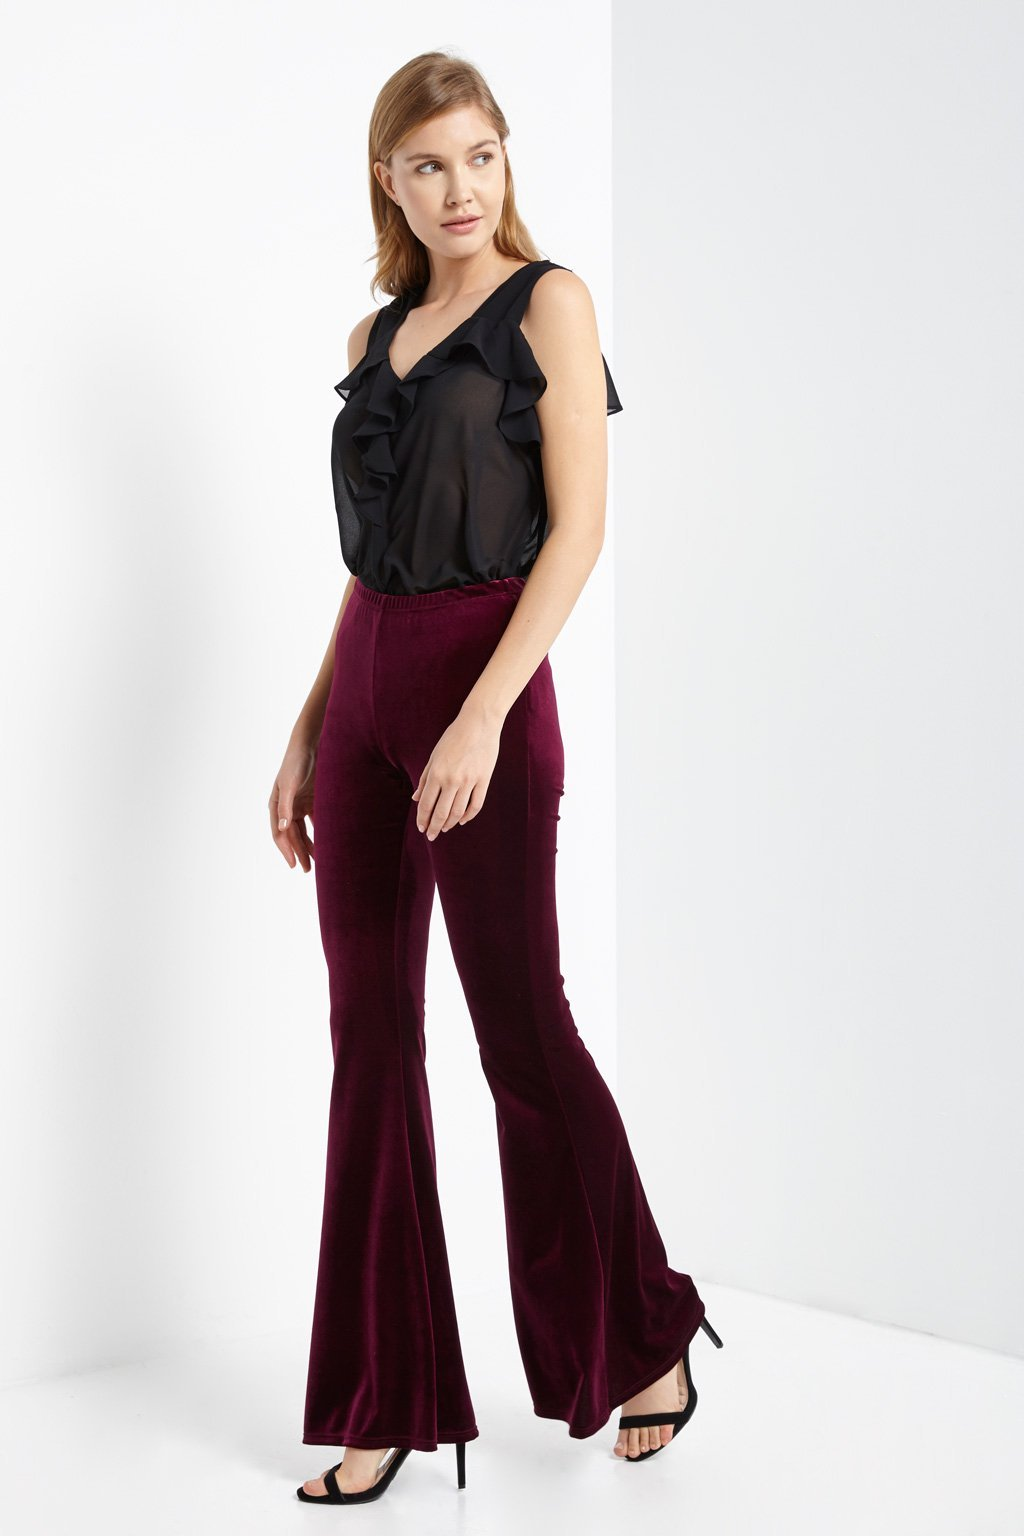 Poshsquare Pants M / Burgundy Velvet High Waisted Bell Bottom Pants